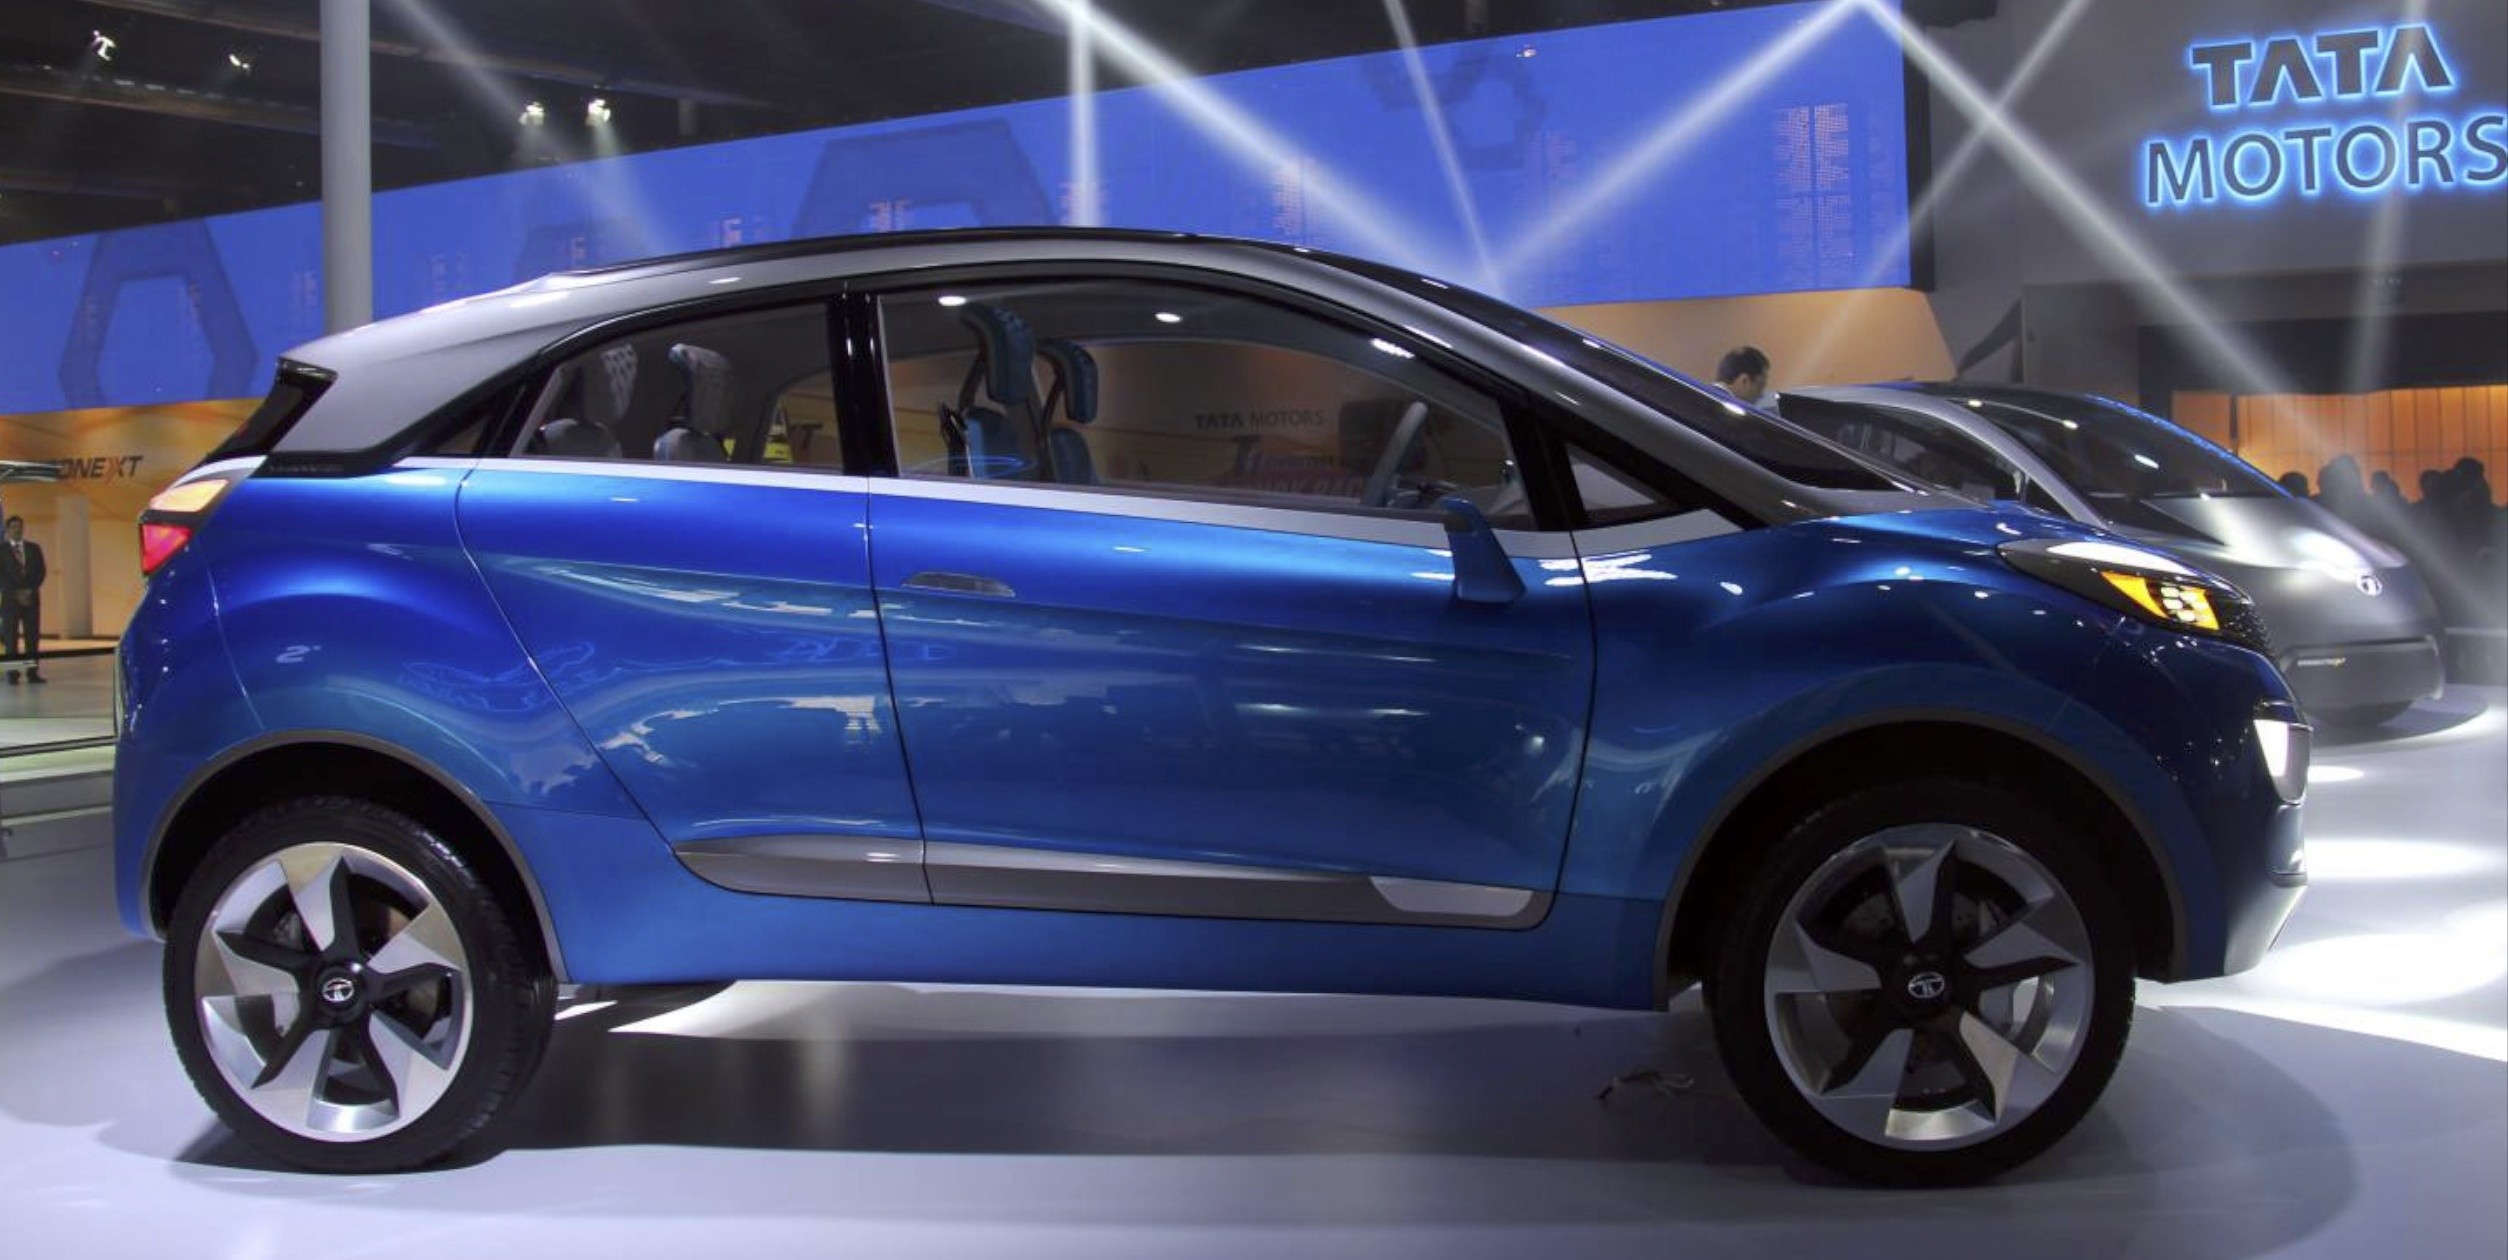 Tata Nexon Compact Suv Concept Frequently Asked Question